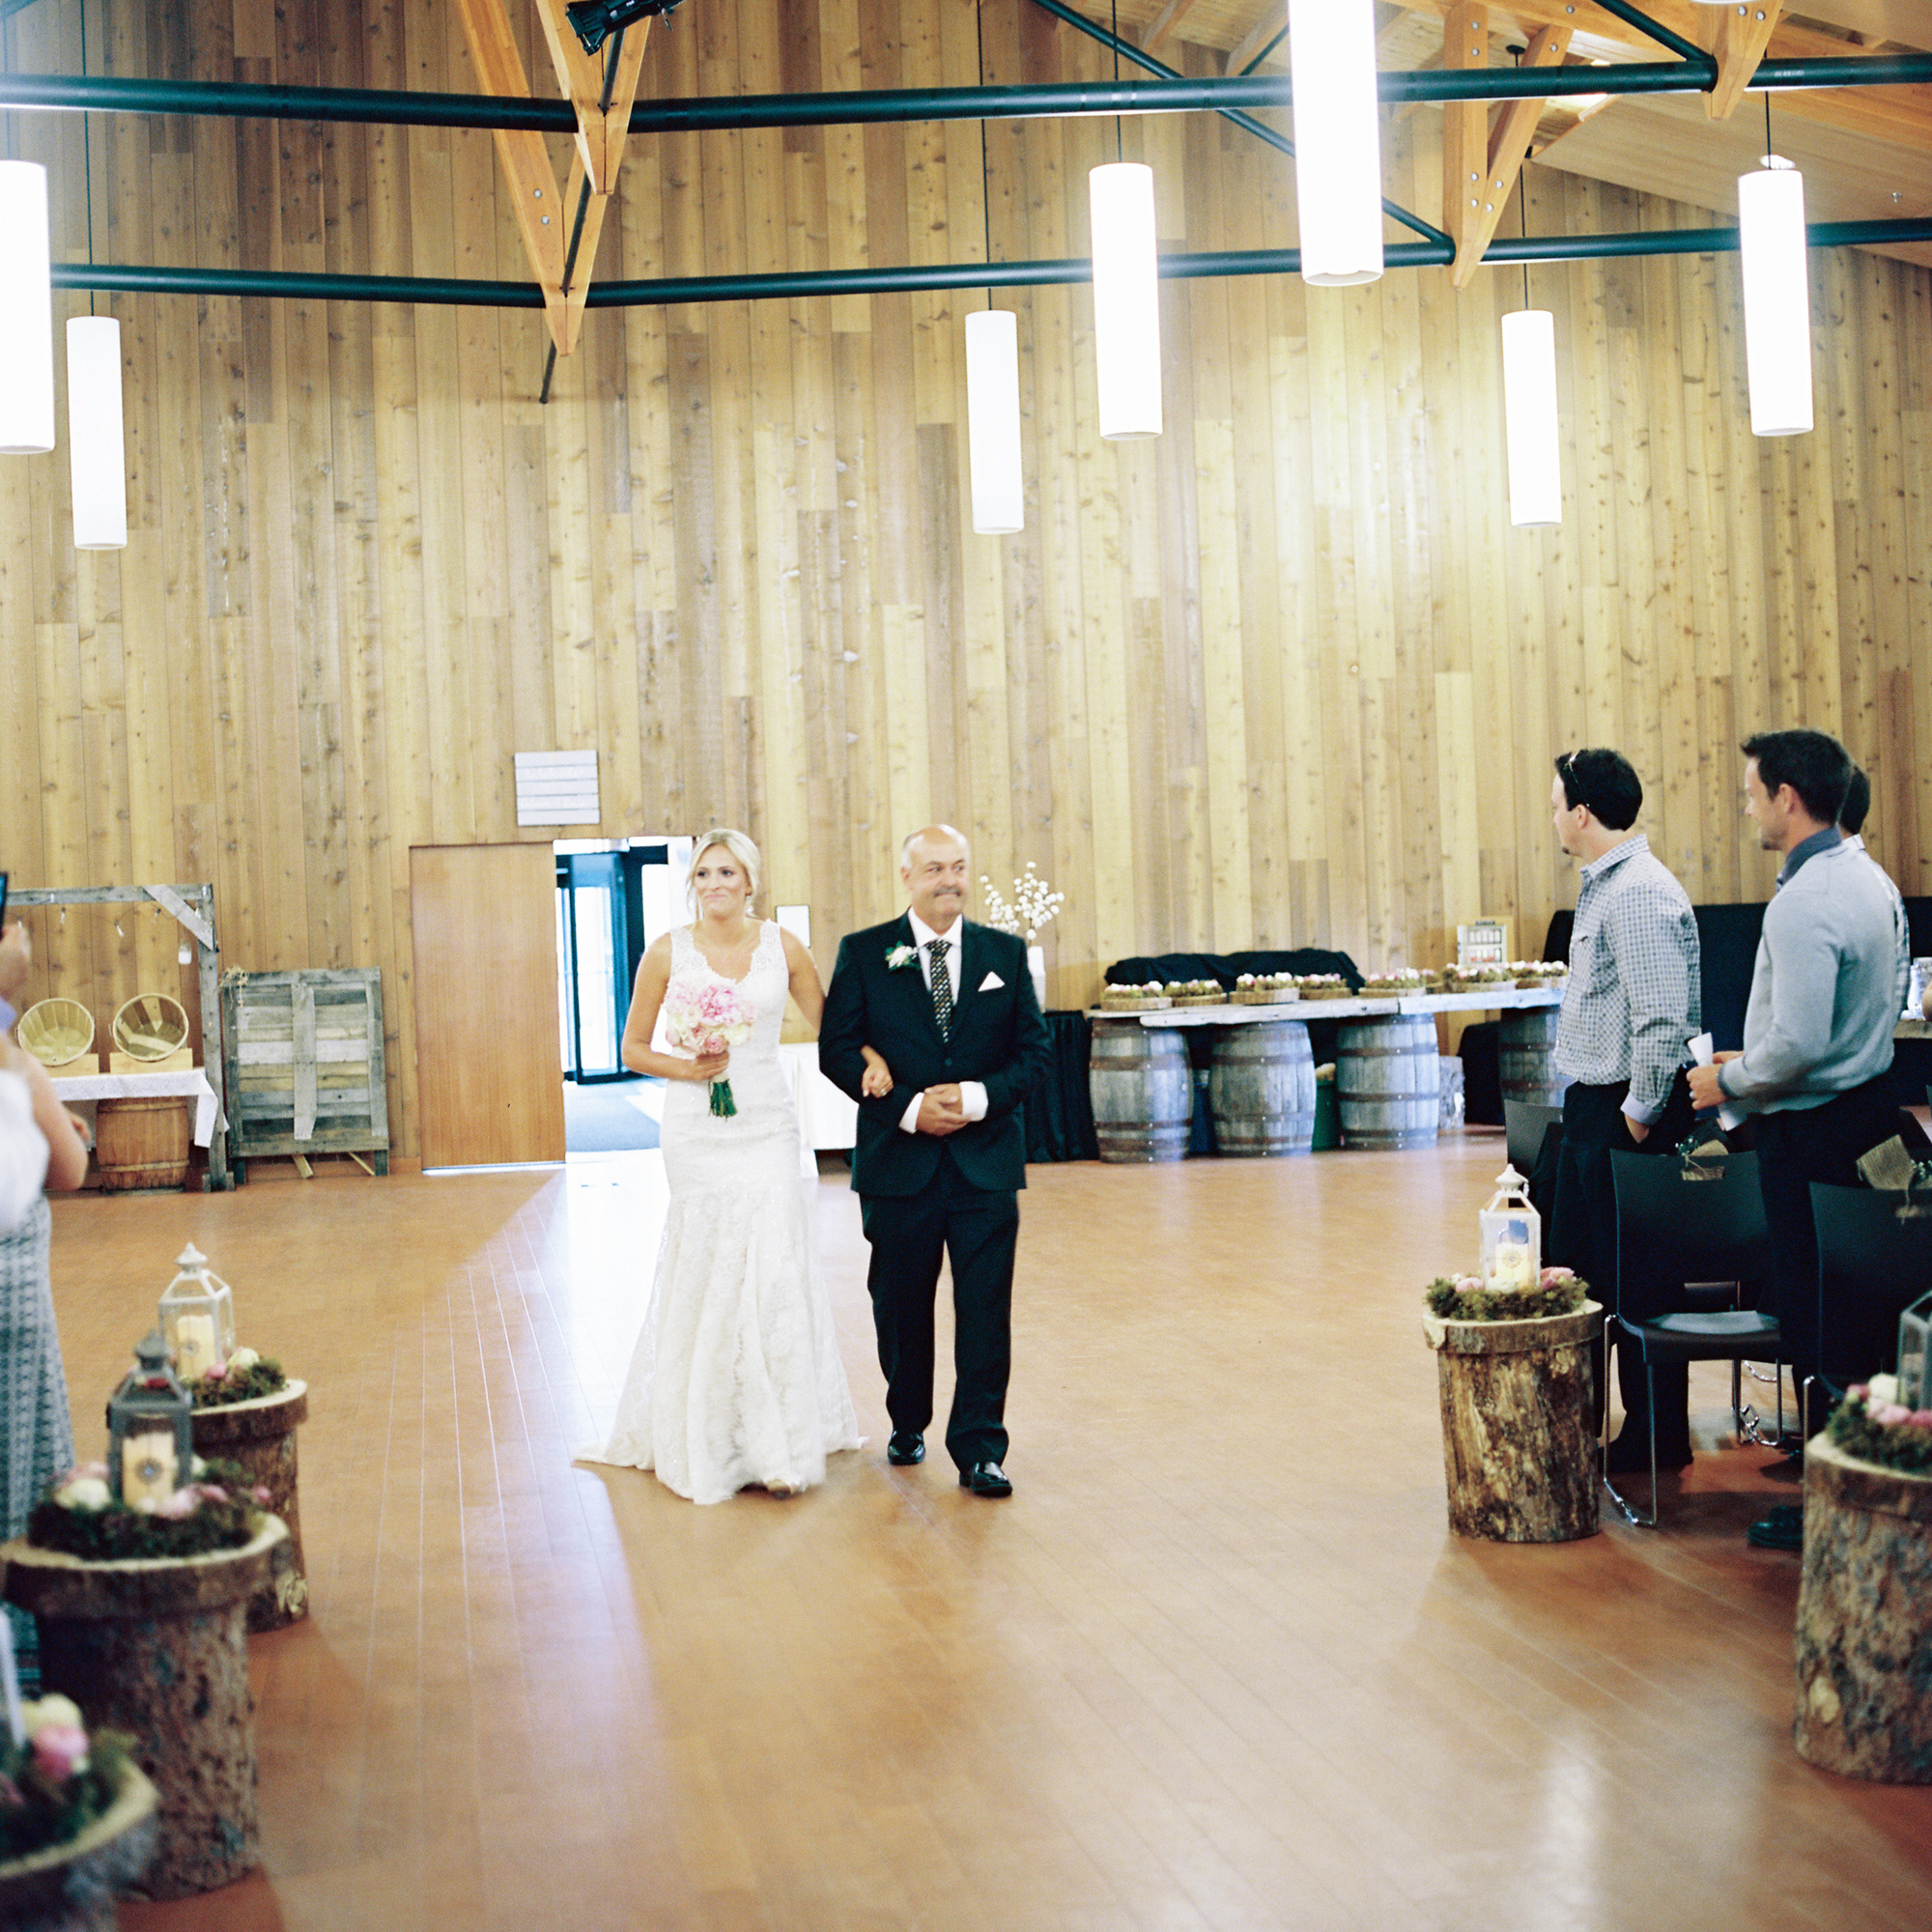 Bride and Father walking down aisle in the Kwanlin Dün Cultural Centre in Whitehorse, Yukon